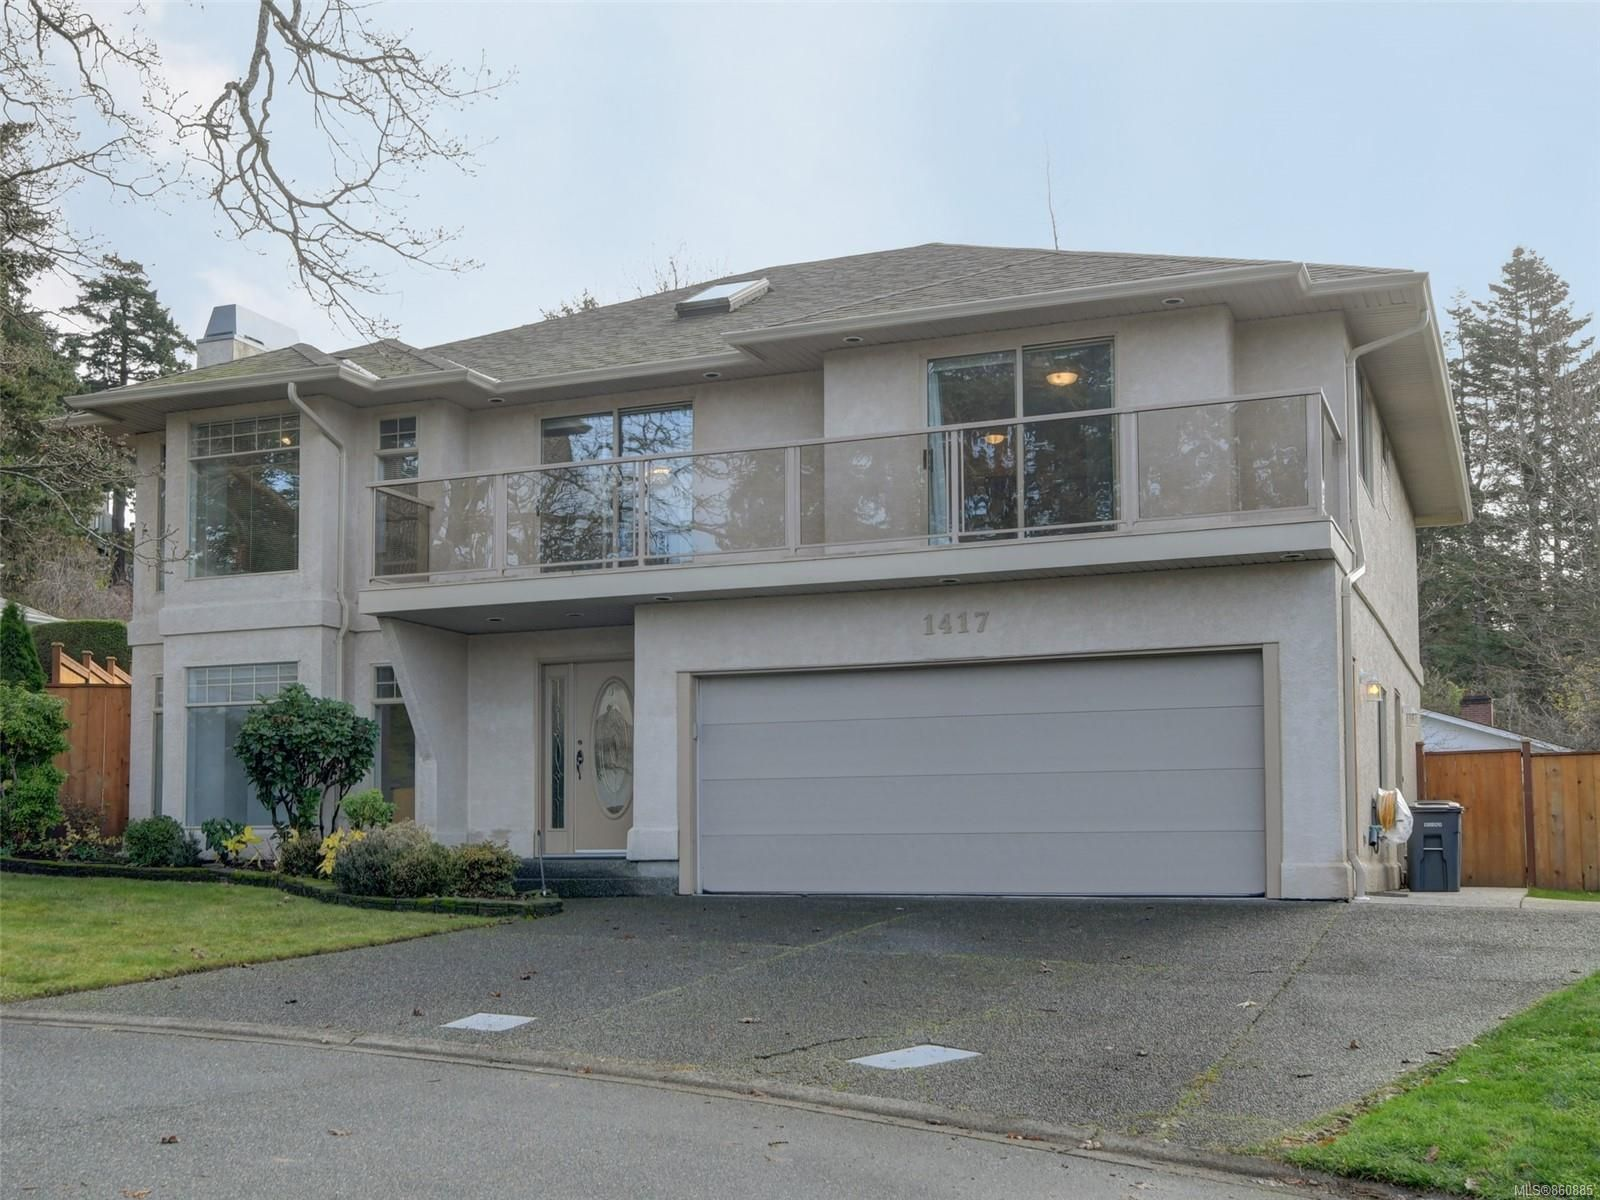 Main Photo: 1417 Anna Clare Pl in : SE Cedar Hill House for sale (Saanich East)  : MLS®# 860885